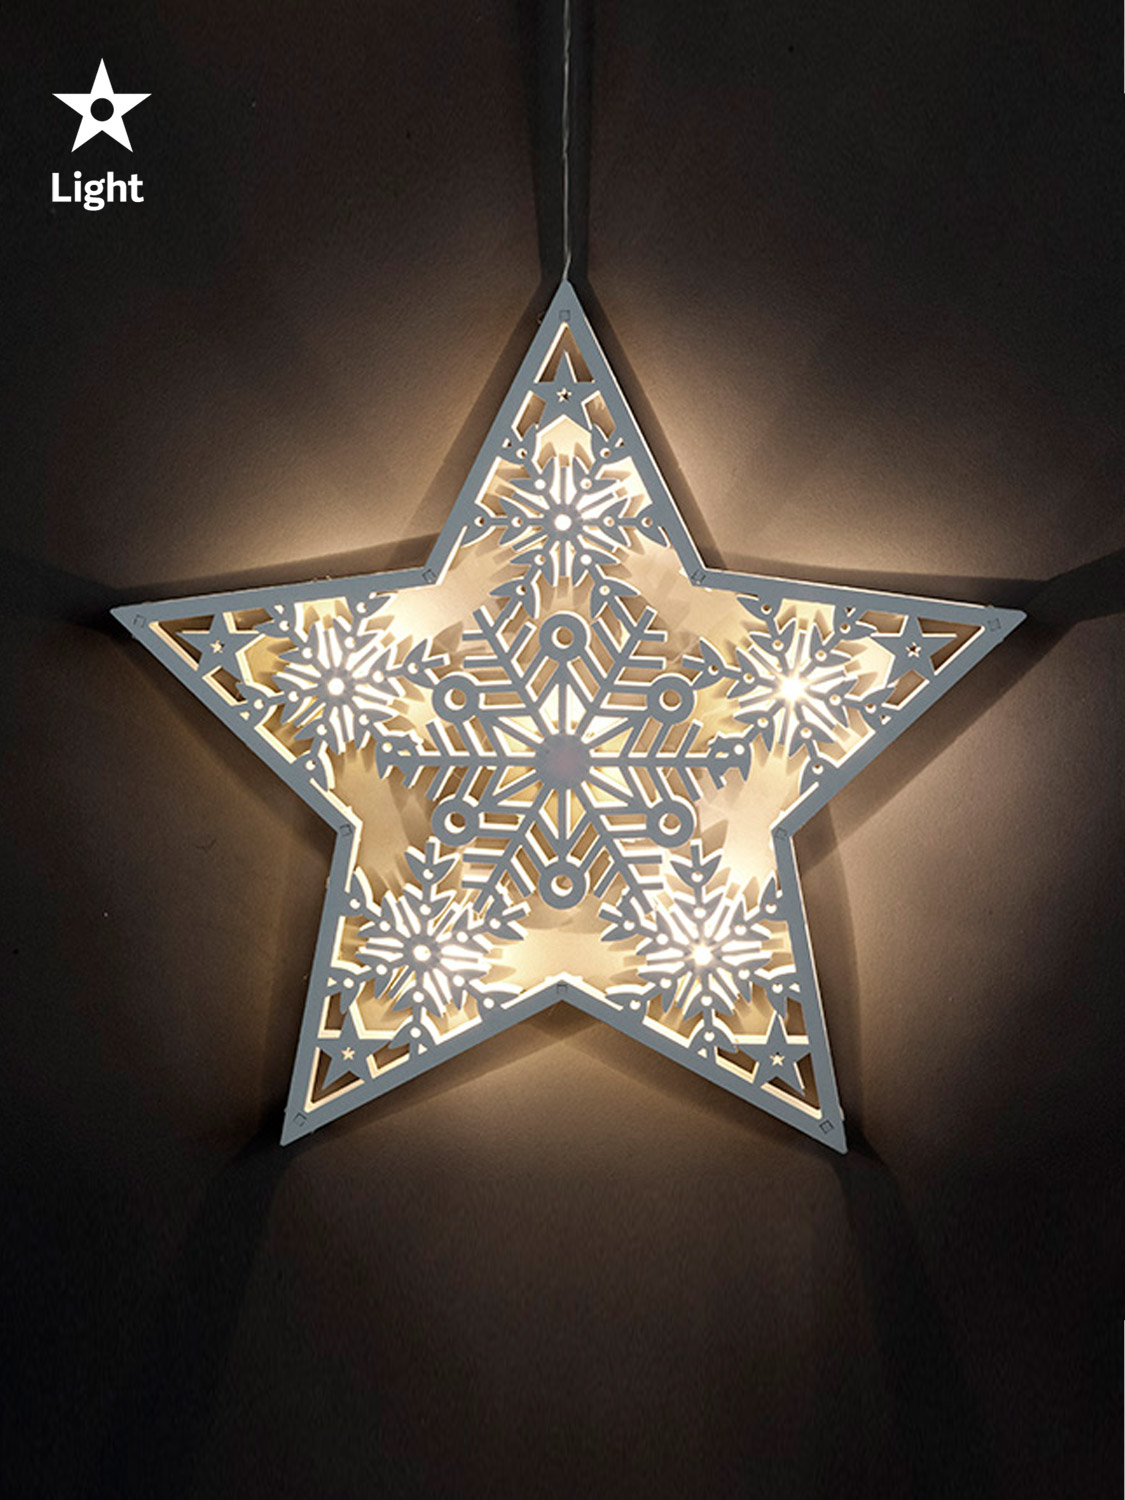 Led Wooden Hanging Star Light Up Christmas Decoration Window Natural